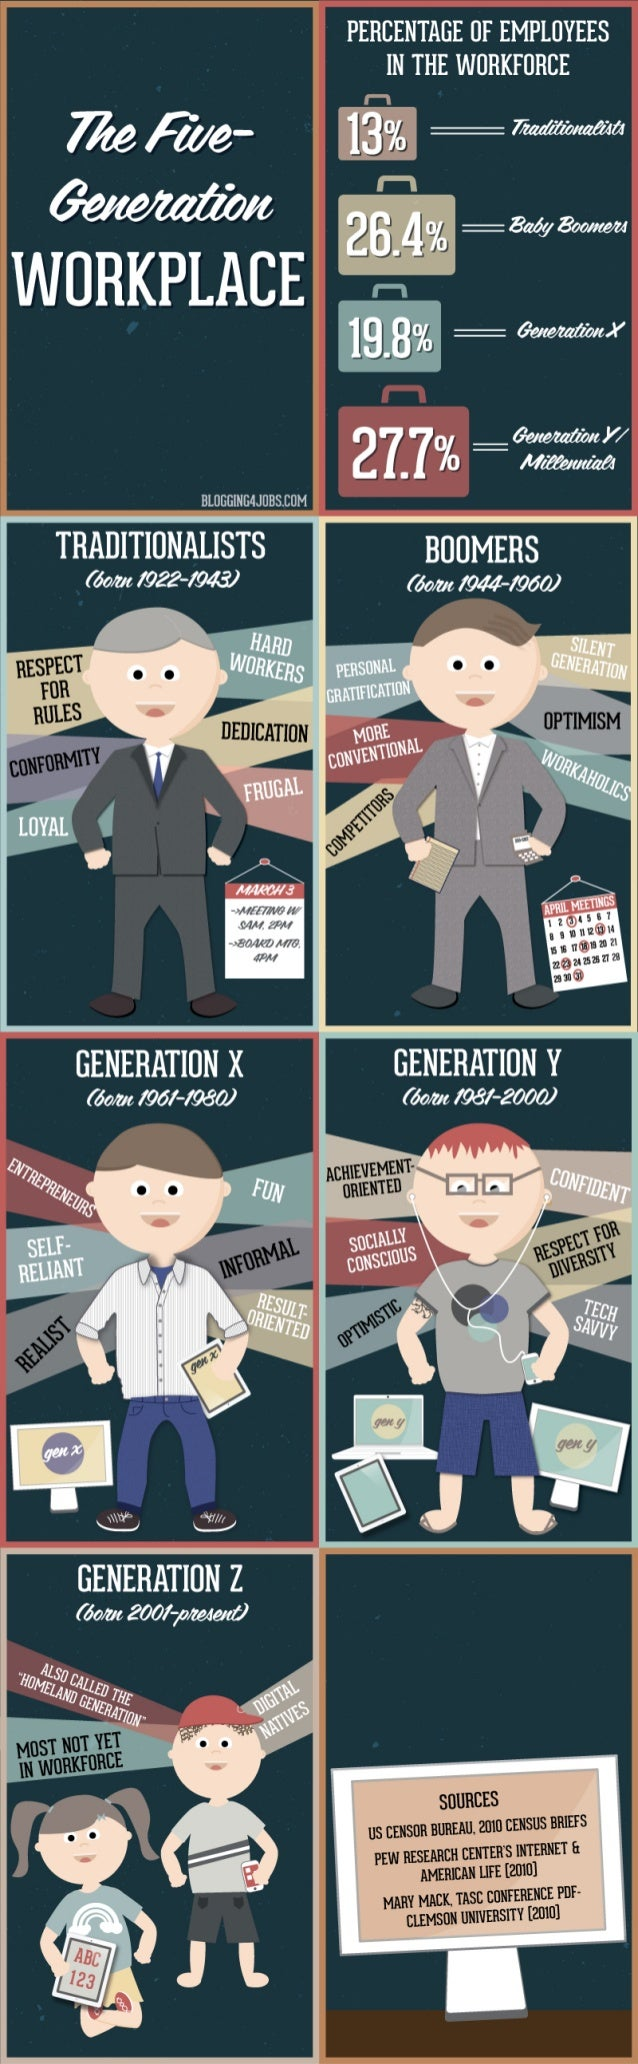 Generations workplace